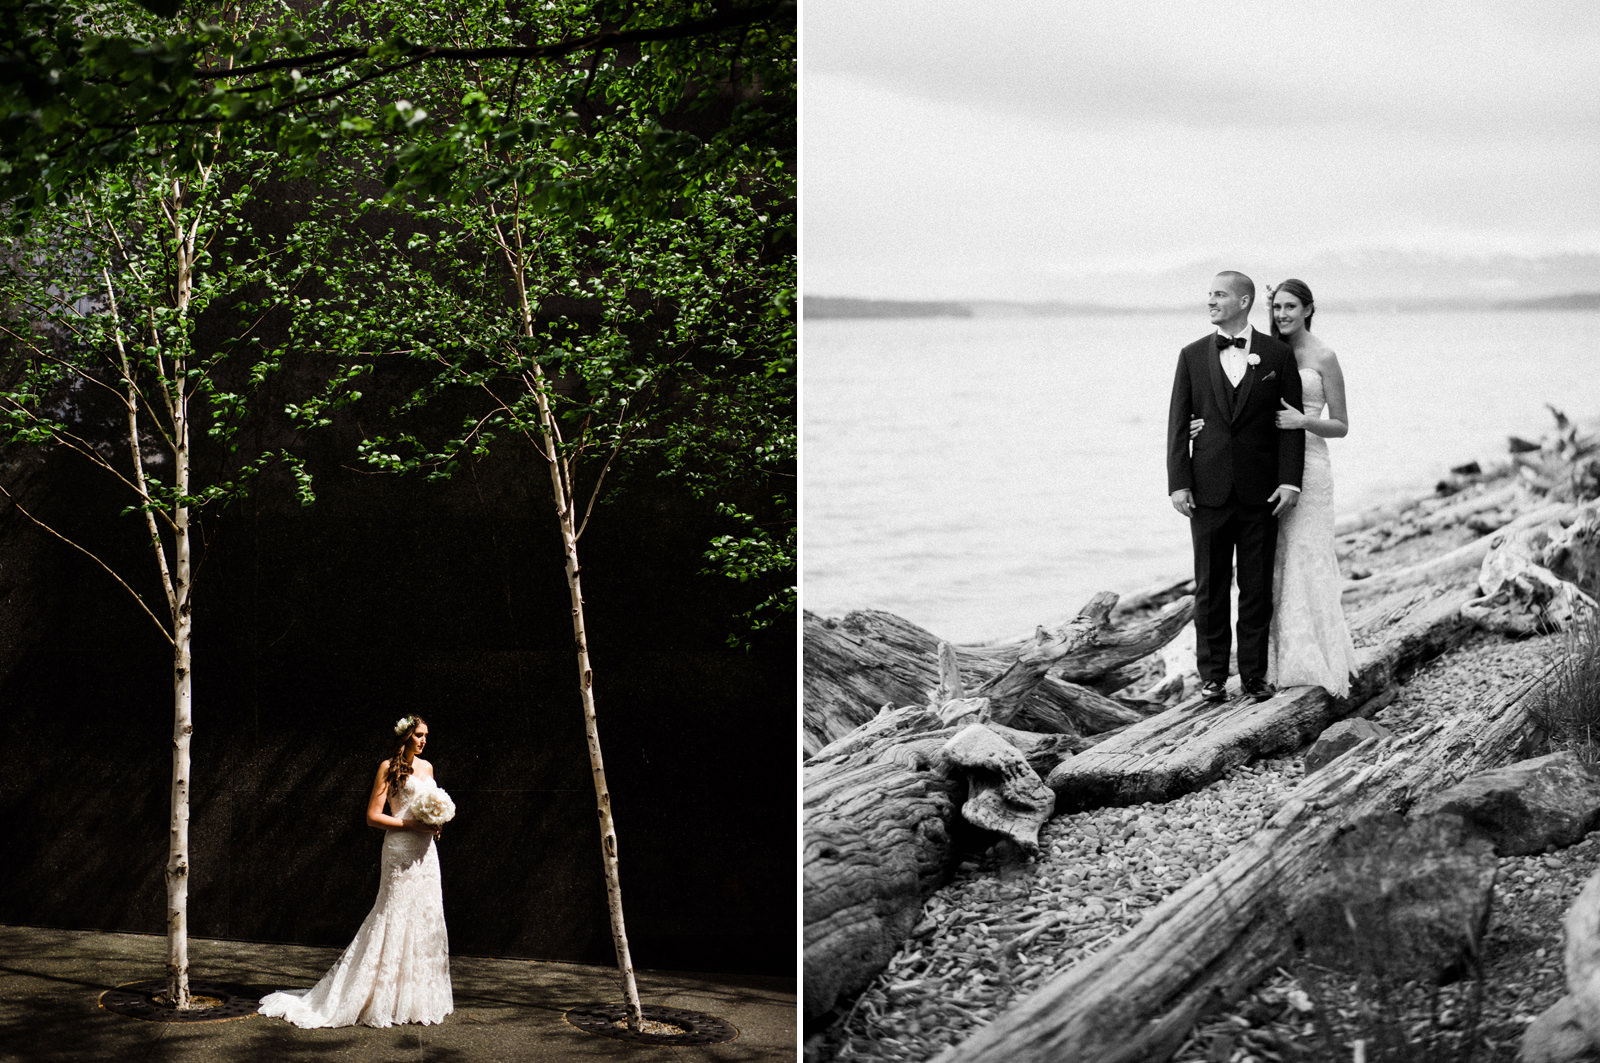 189-west-seattle-wedding-at-hall-at-fauntleroy-by-ryan-flynn-photography.jpg